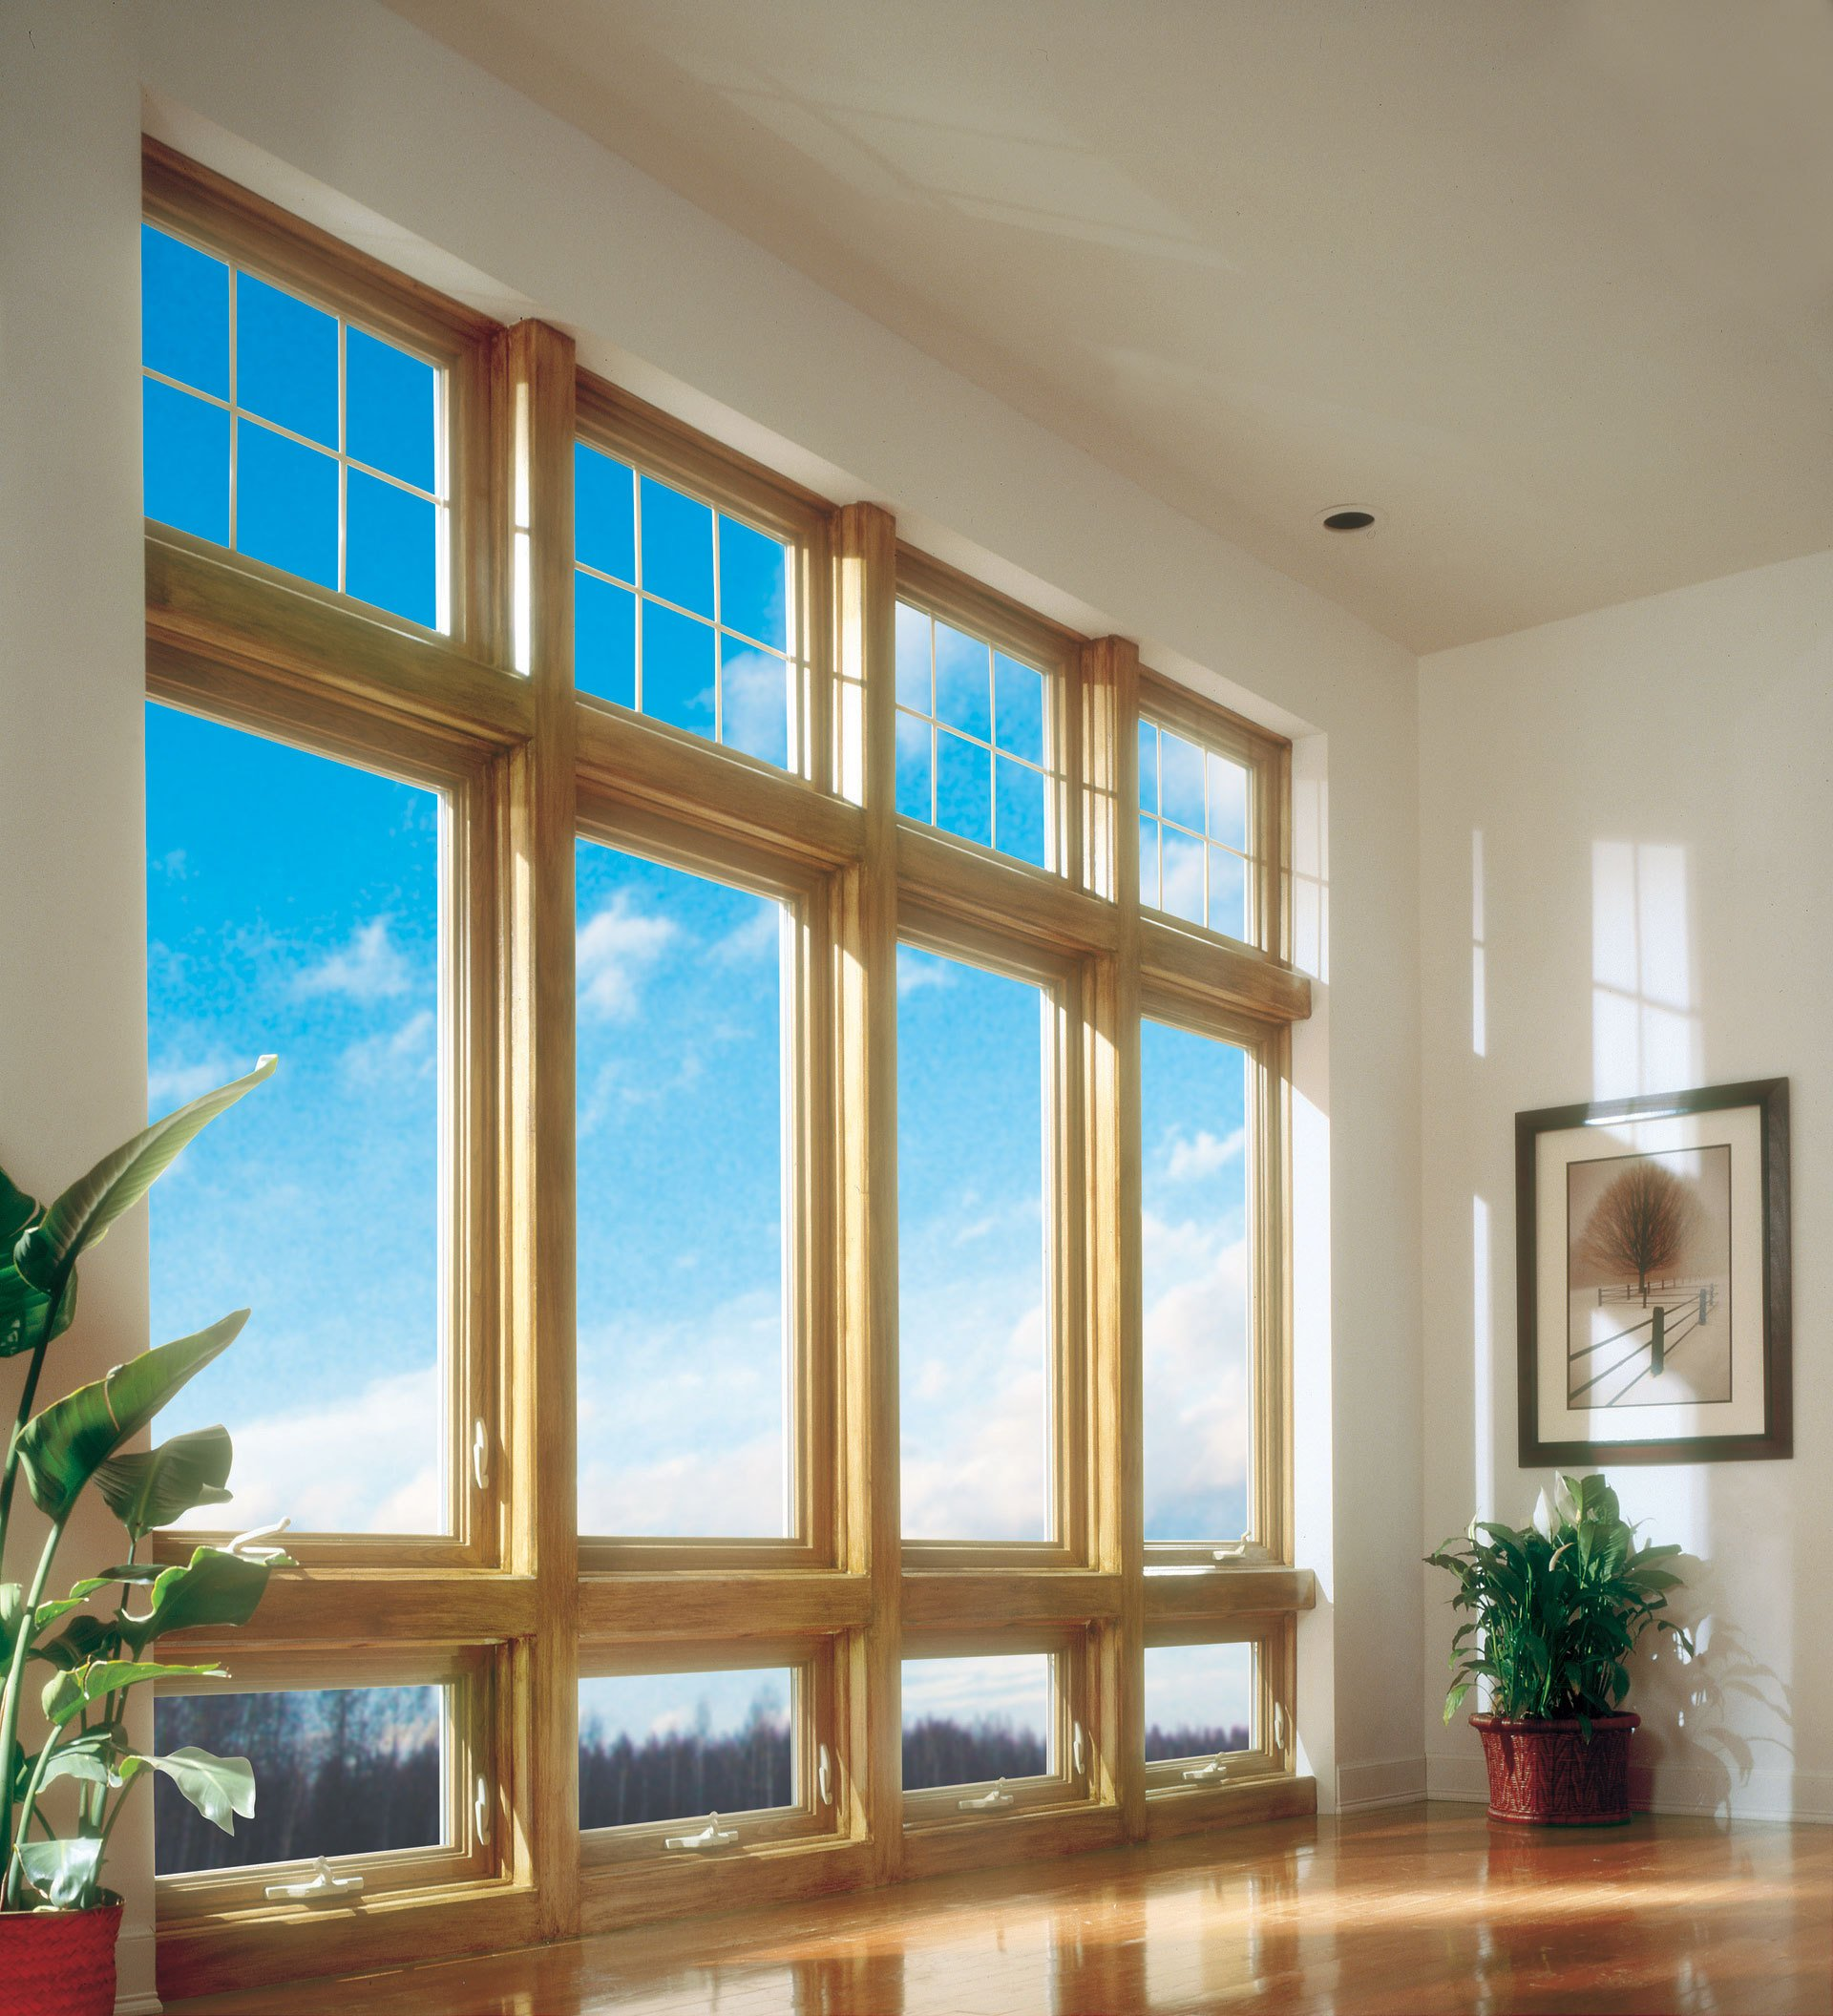 Vinyl replacement windows in cincinnati oh for House window design